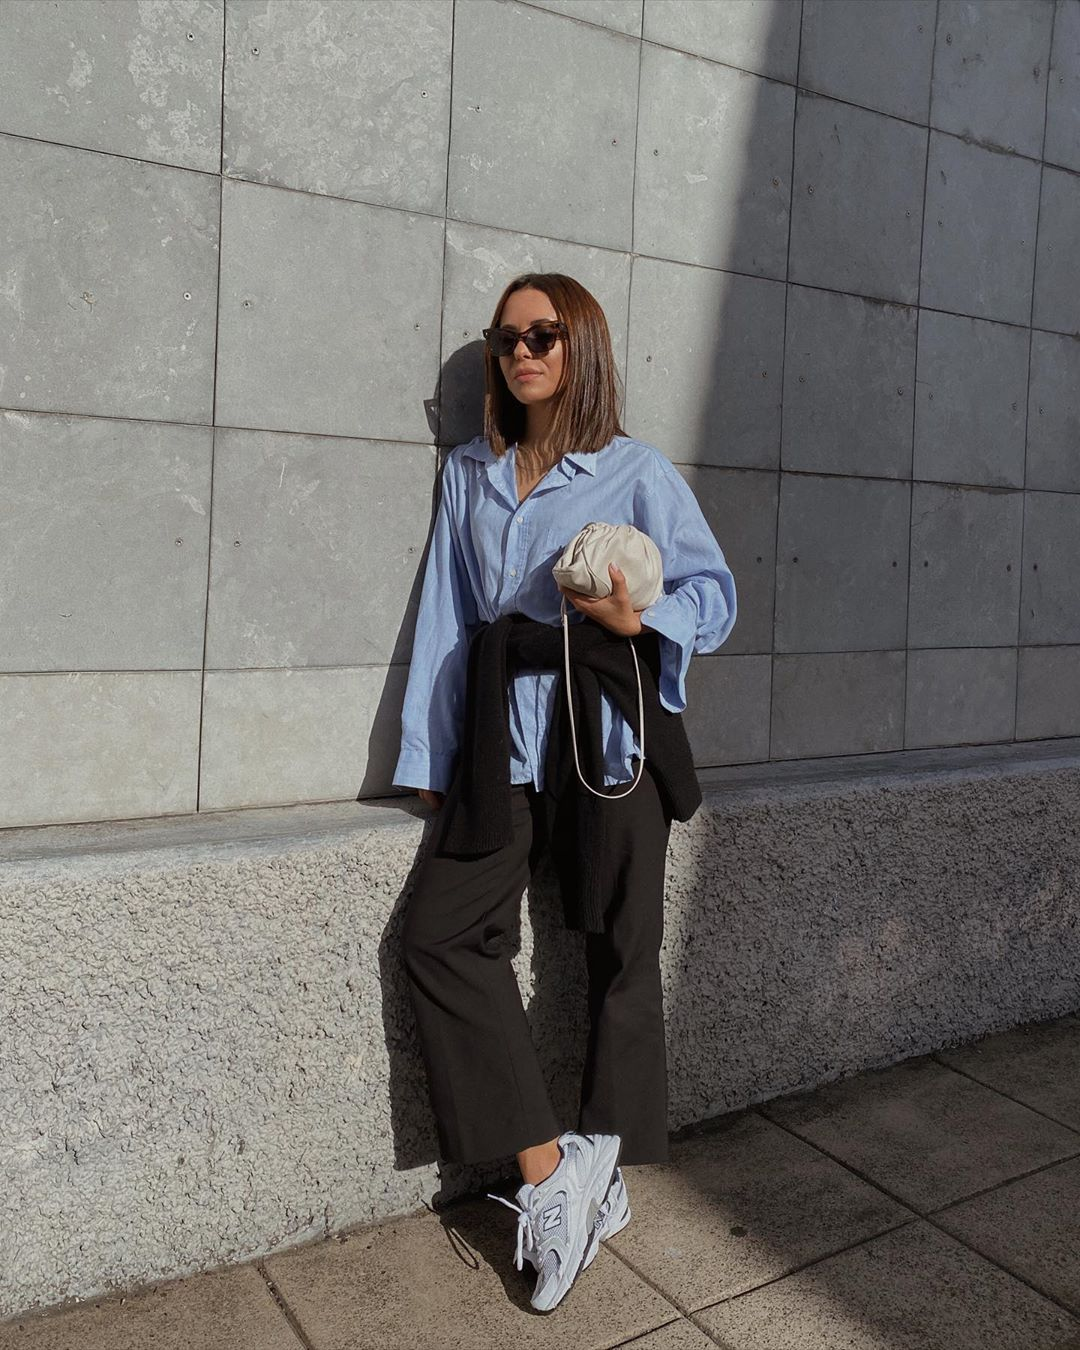 8 Wide-Leg Pant Outfits That Will Make You Want to Ditch Your Skinny Jeans ASAP 3